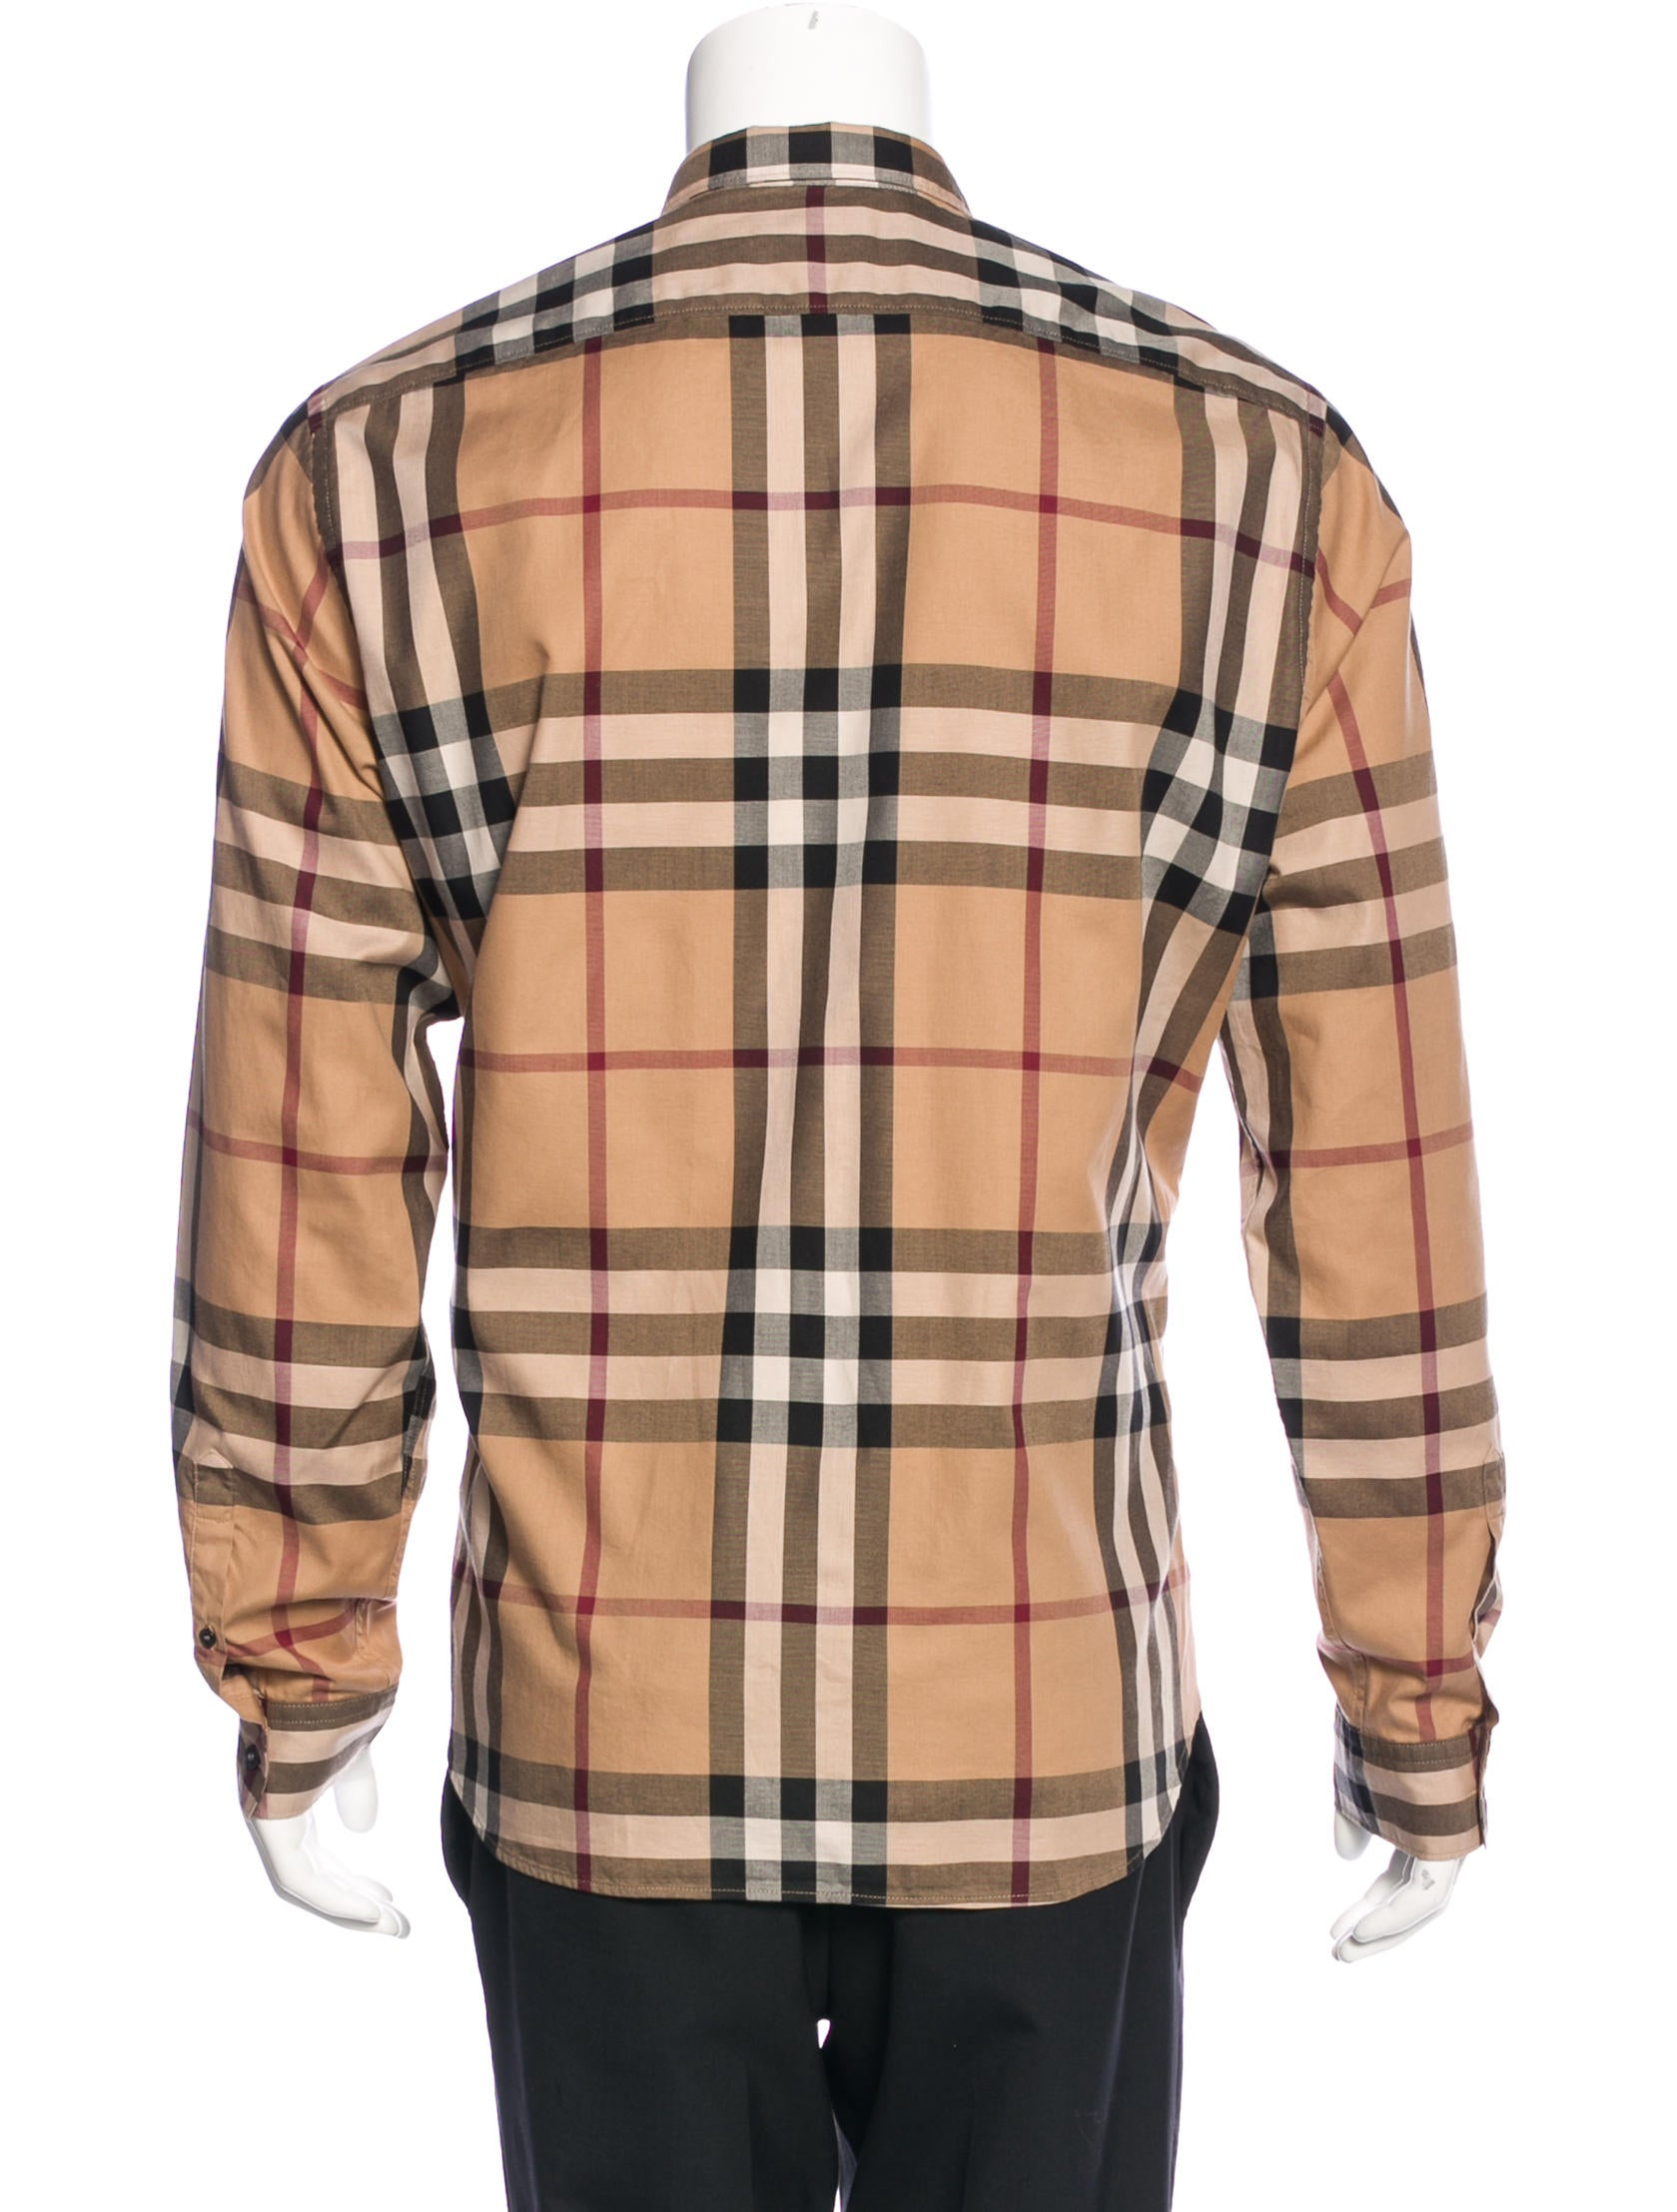 Burberry brit super nova check shirt clothing bbr26813 for Burberry brit checked shirt